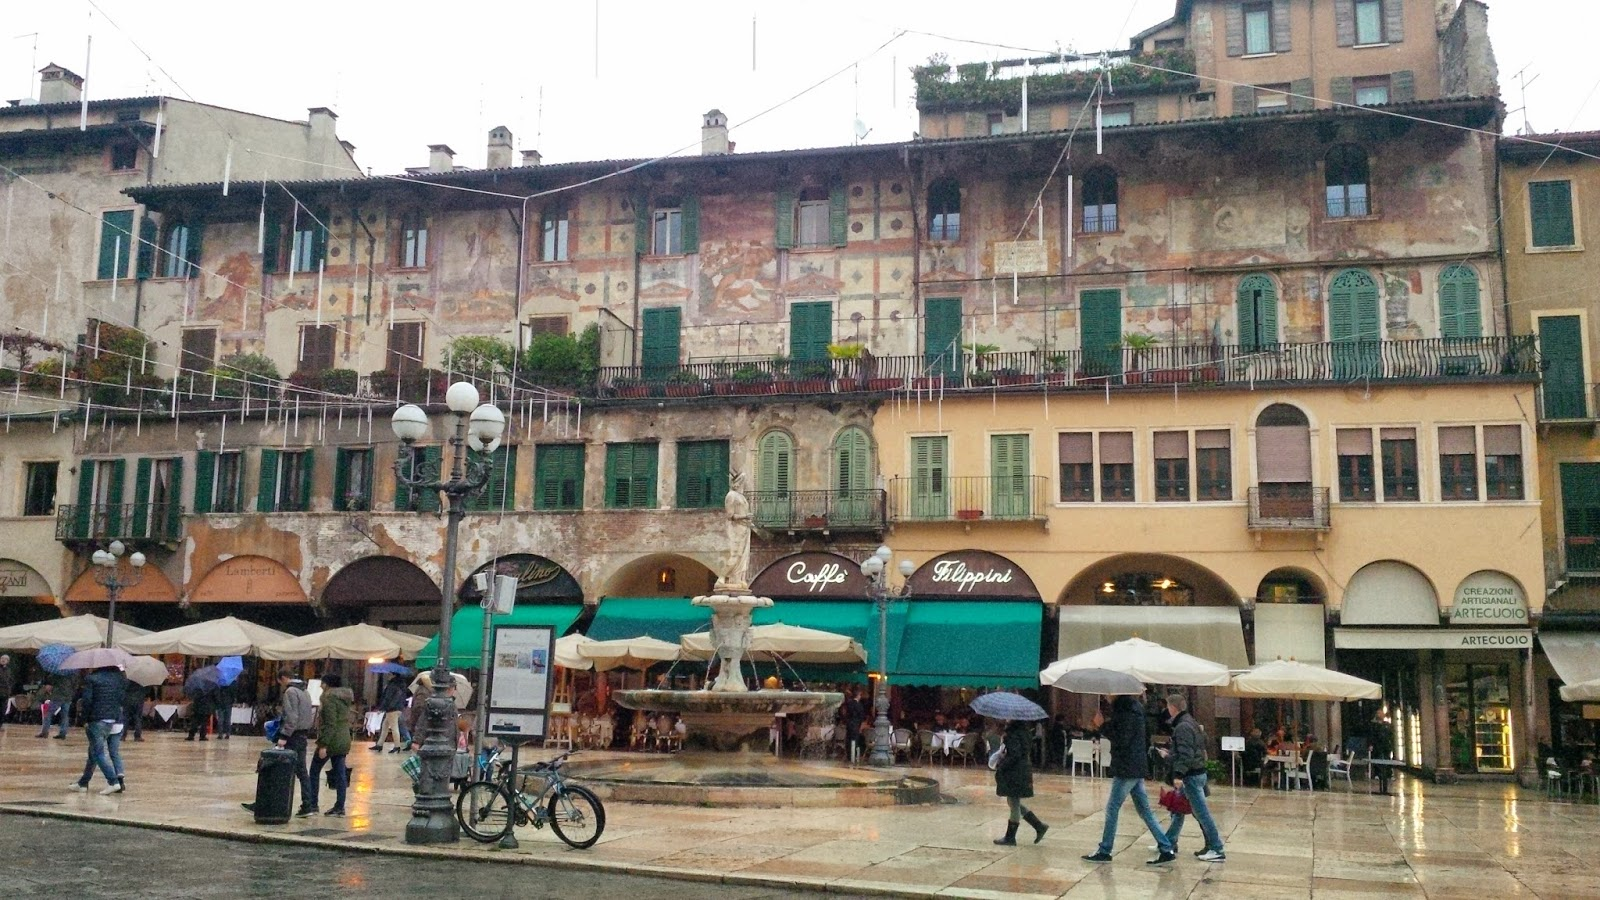 A painted building on Piazza delle Erbe in Verona